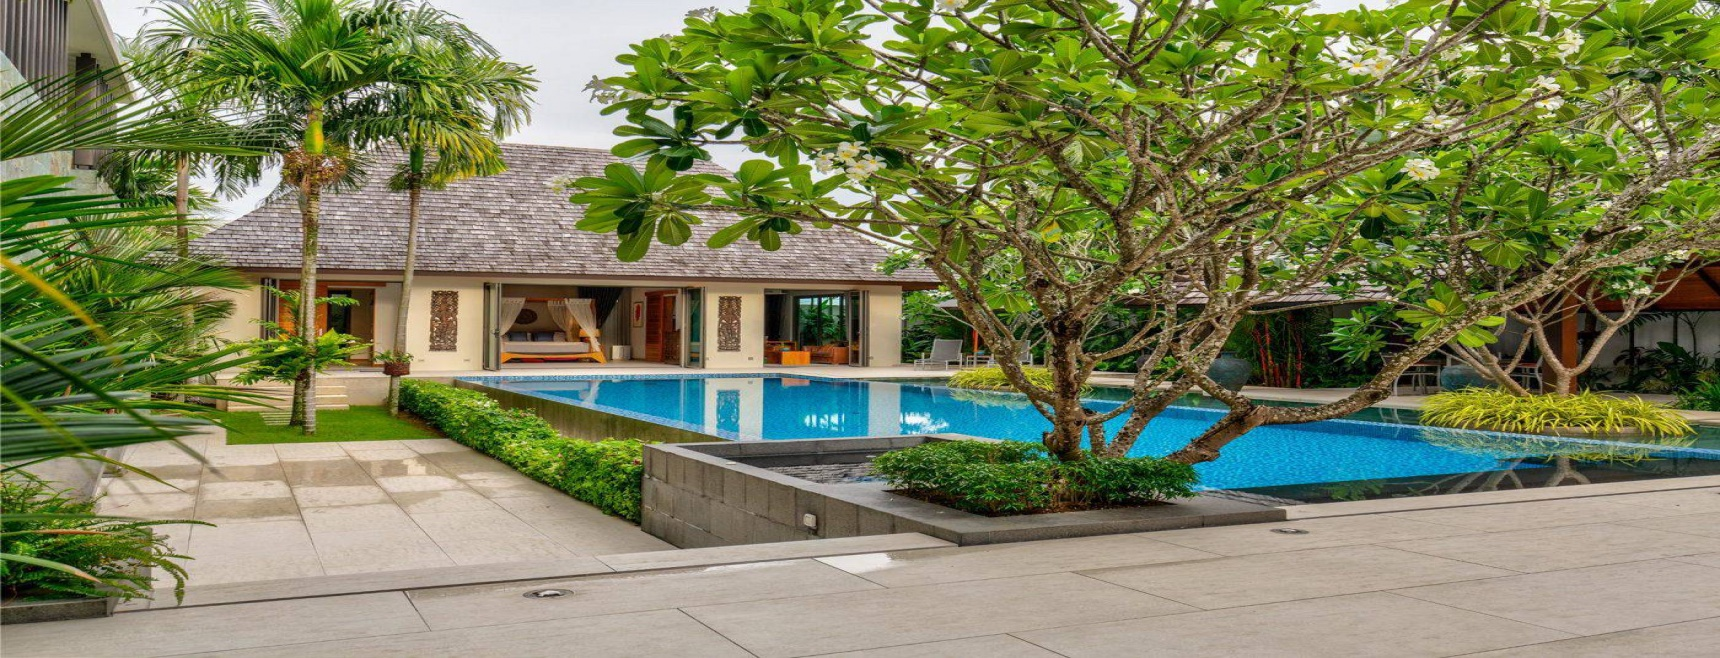 Grand Courtyard Villa 7 Bedroom (Thai-Real.com)